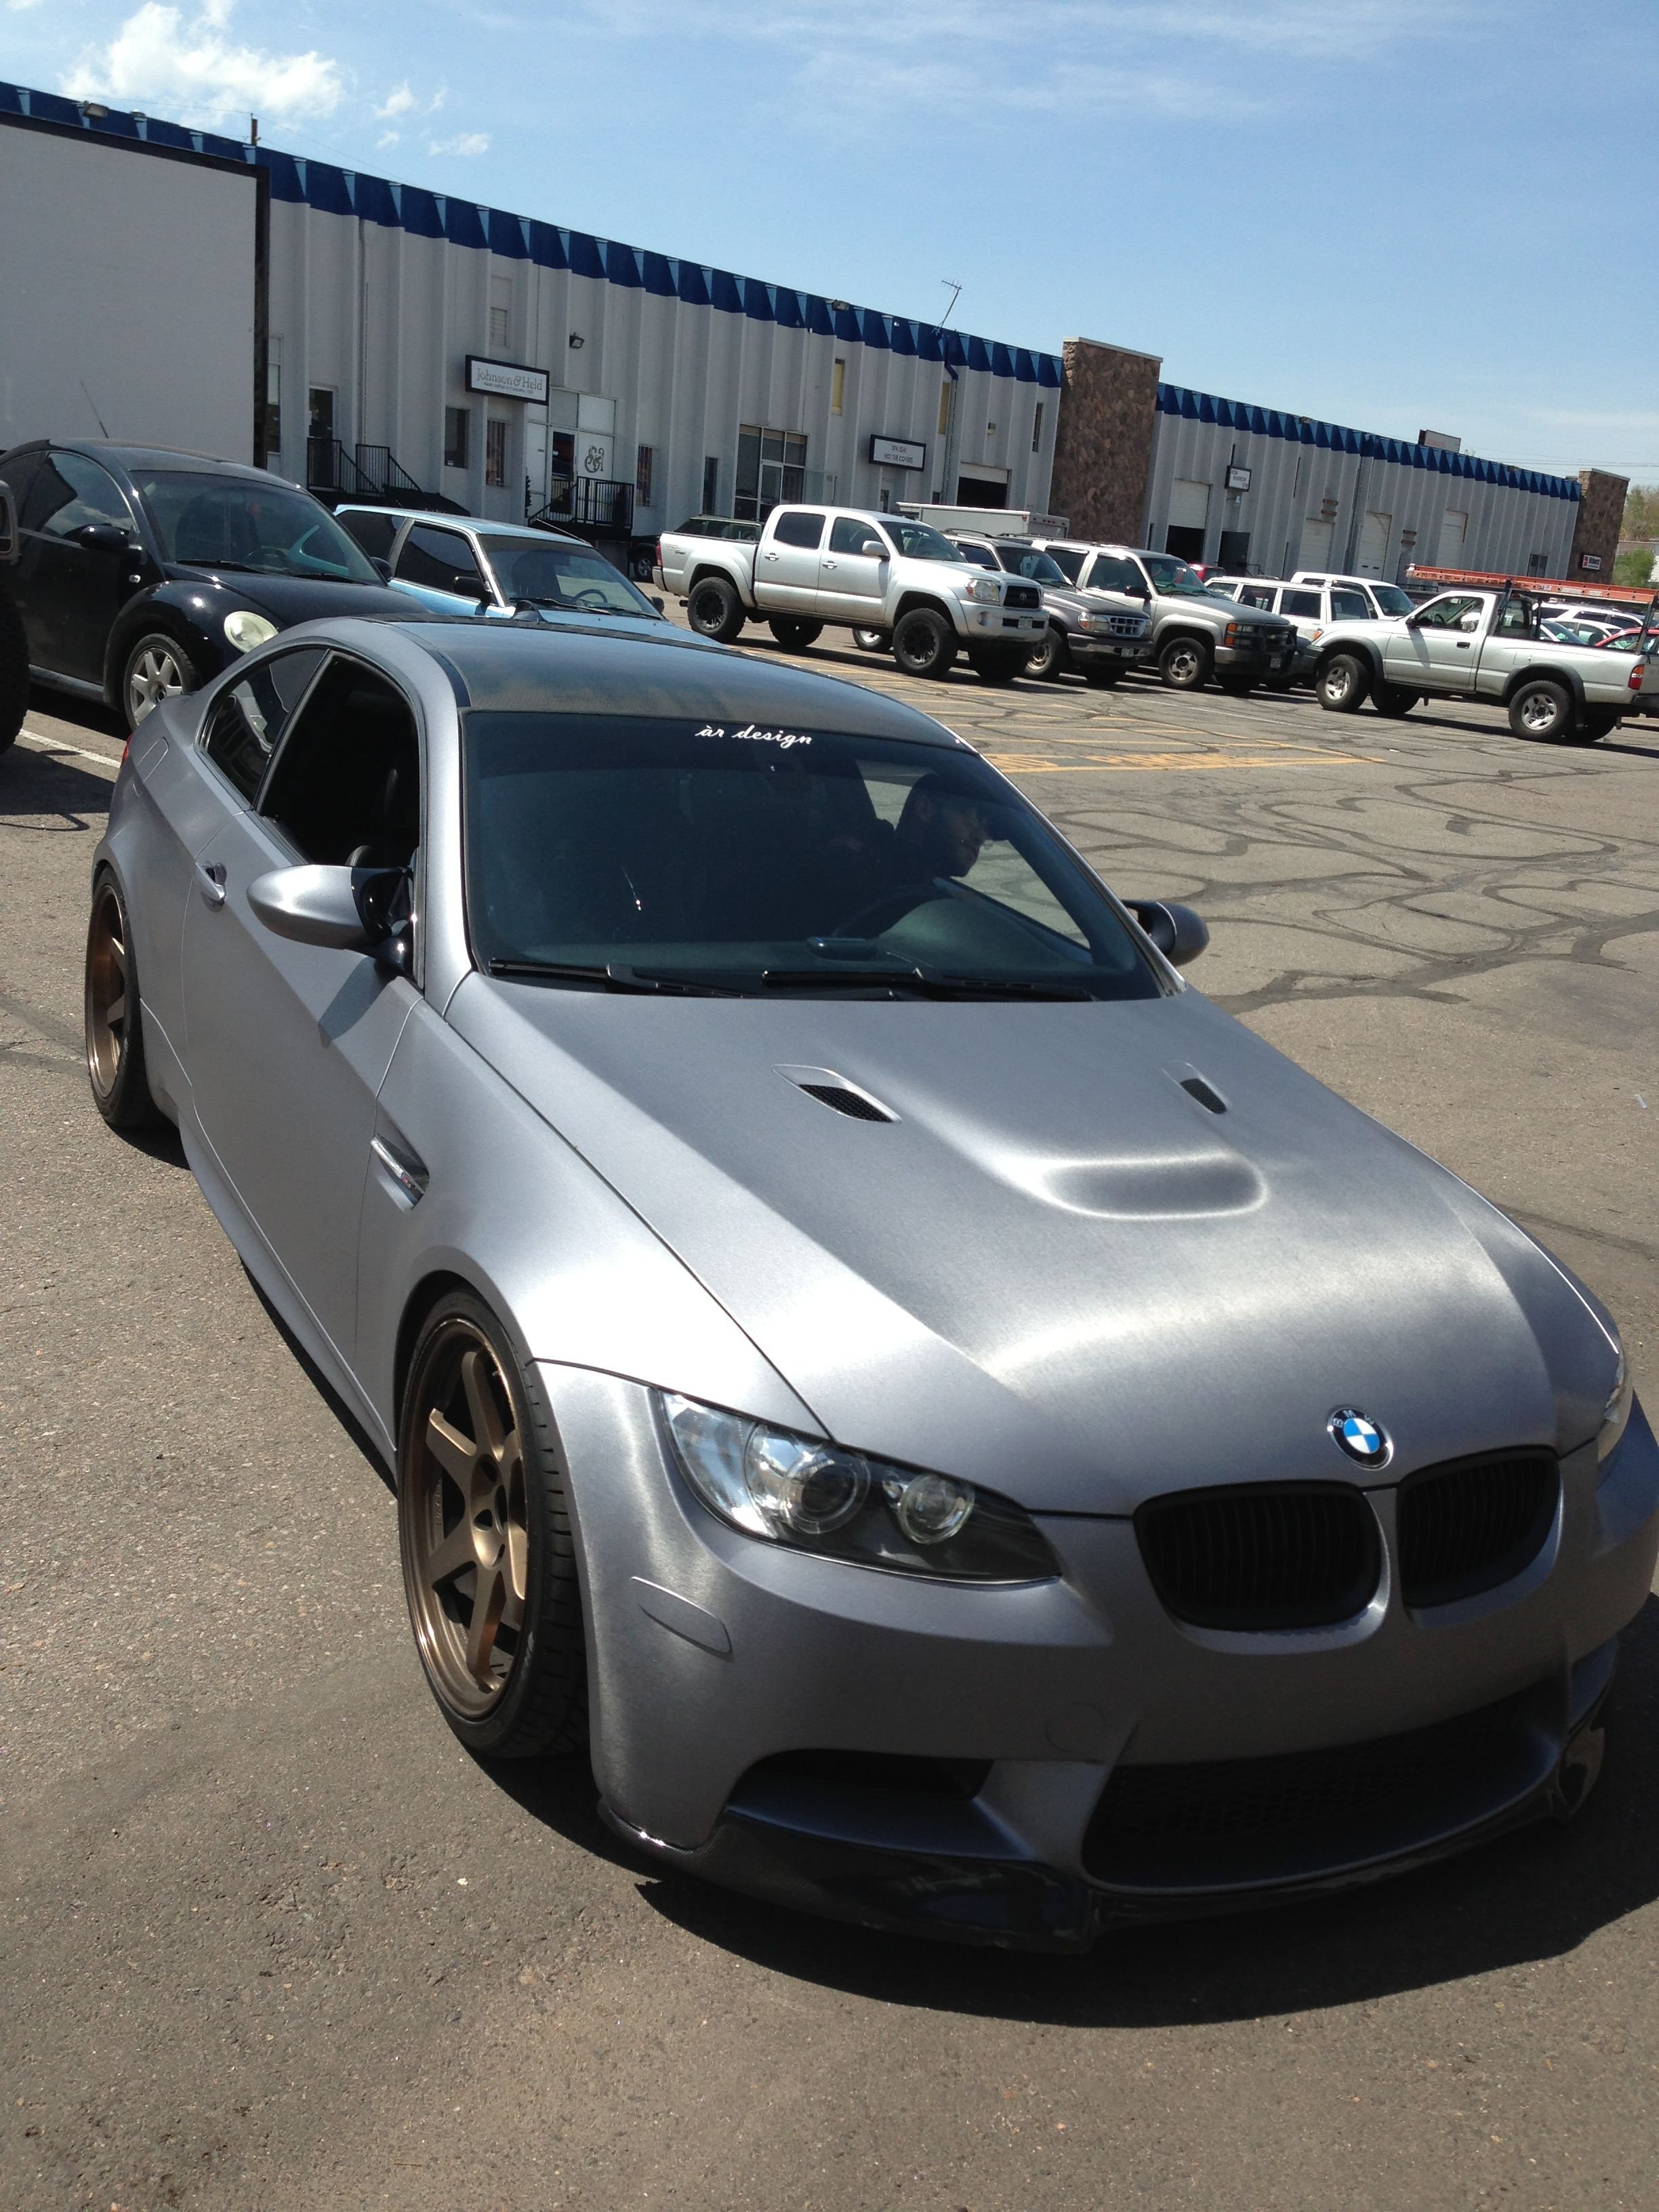 Premier graphics paint wraps vehicle wraps in denver colorado bmw in 3m brushed